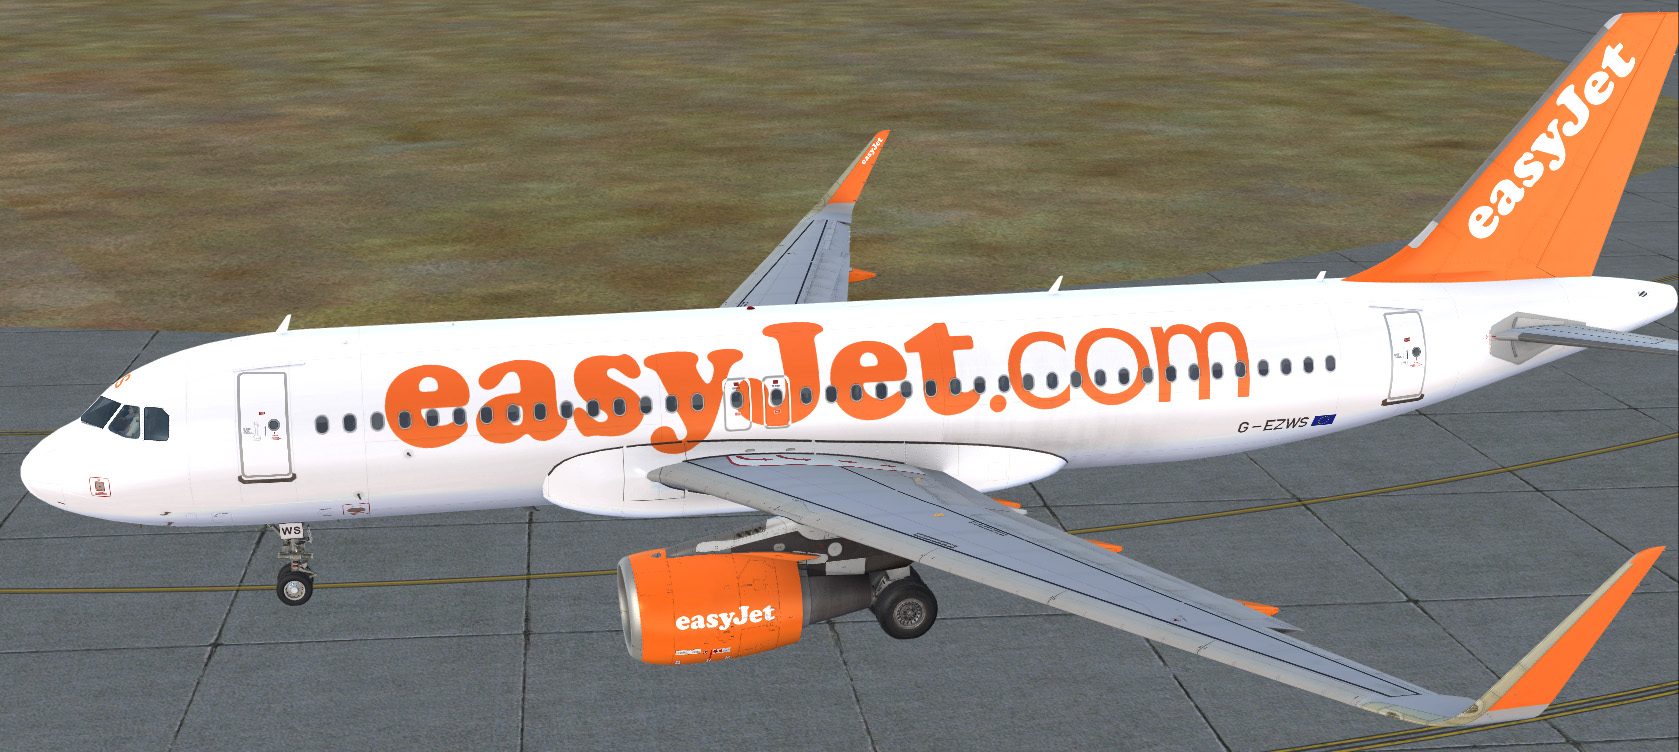 easyJet A320-214 Sharklets G-EZWS - Airbus A320/A321 liveries